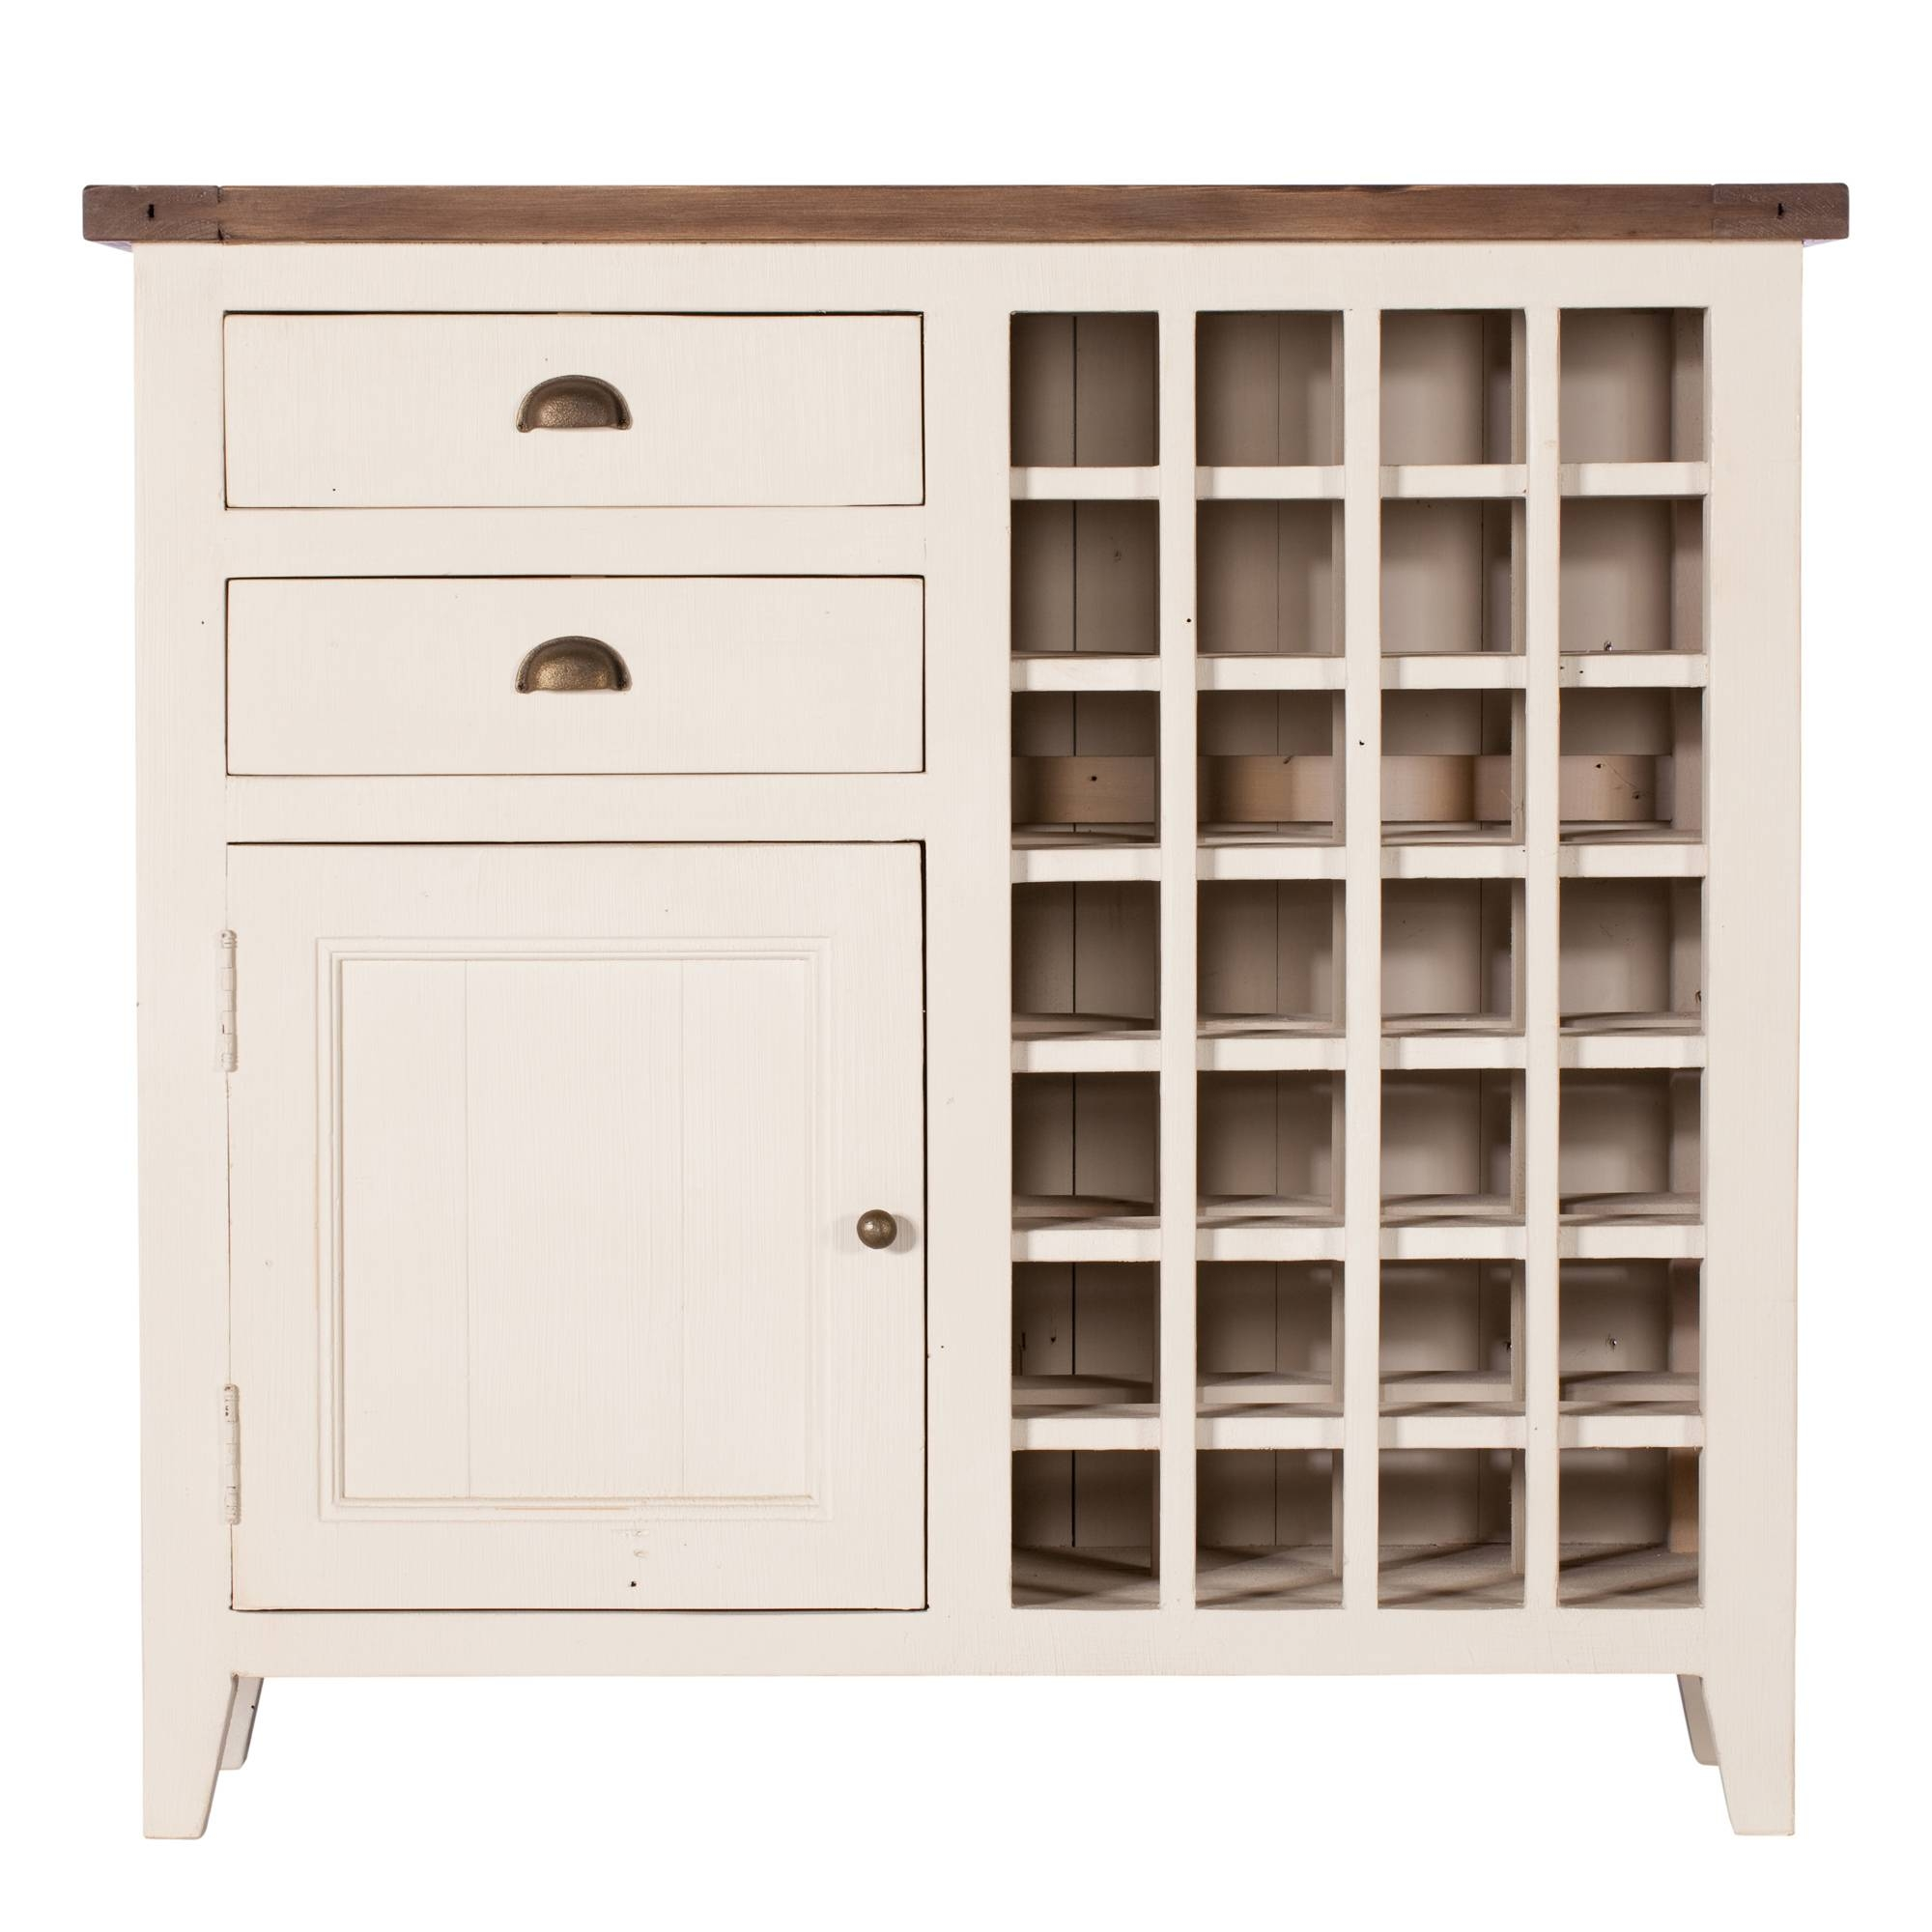 Aldeburgh Wine Rack Sideboard | No 44 Furniture, Cobham Nr London in Sideboards With Wine Rack (Image 1 of 15)